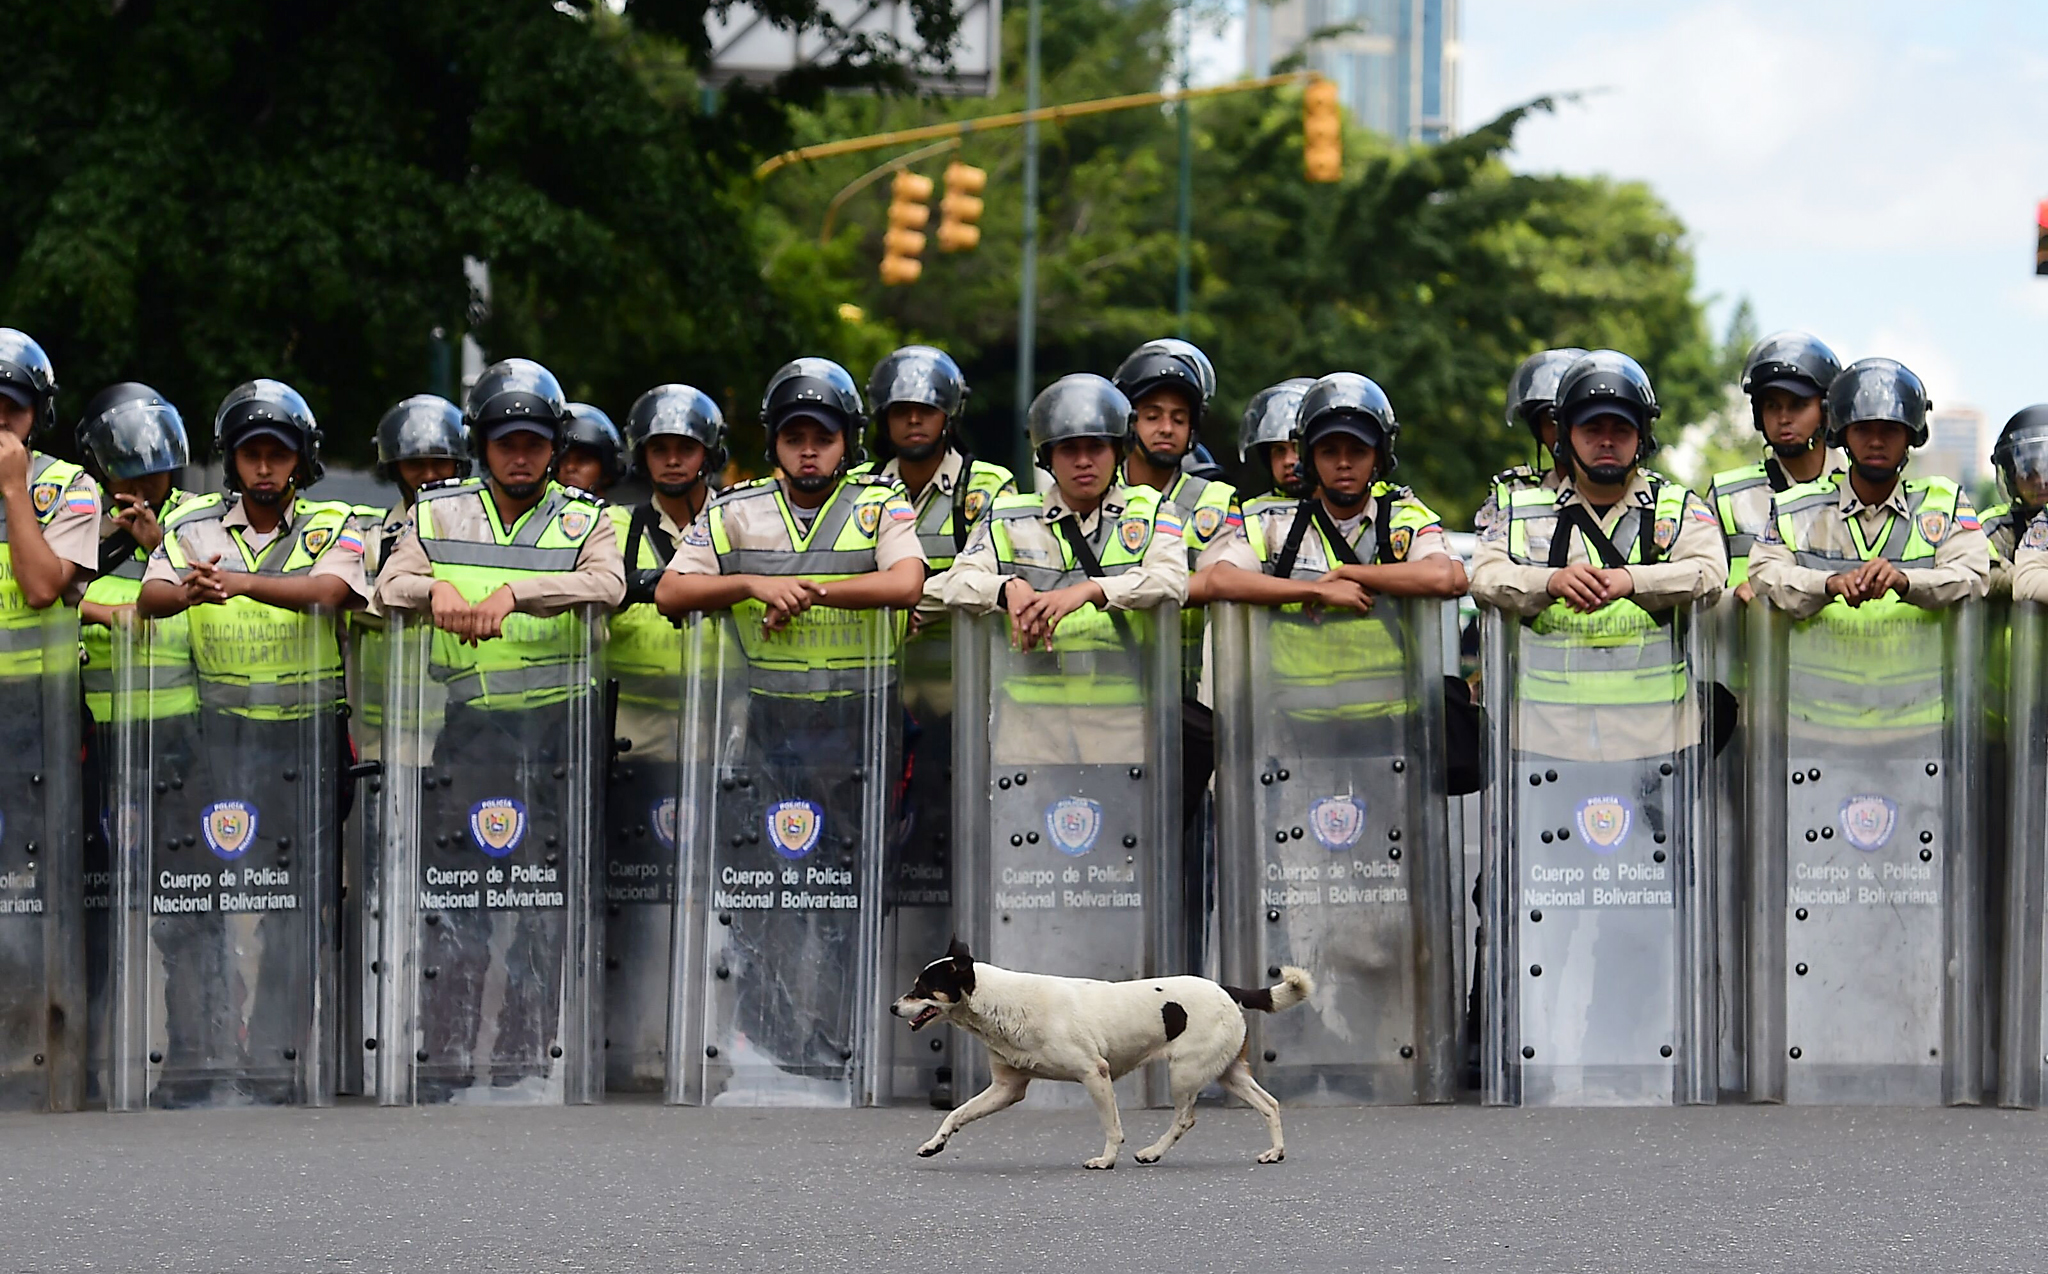 TOPSHOT - Riot police stop students of the public Central University of Venezuela during a demonstration in demand of the referendum on removing President Nicolas Maduro in Caracas on June 09, 2016.  / AFP PHOTO / RONALDO SCHEMIDTRONALDO SCHEMIDT/AFP/Getty Images